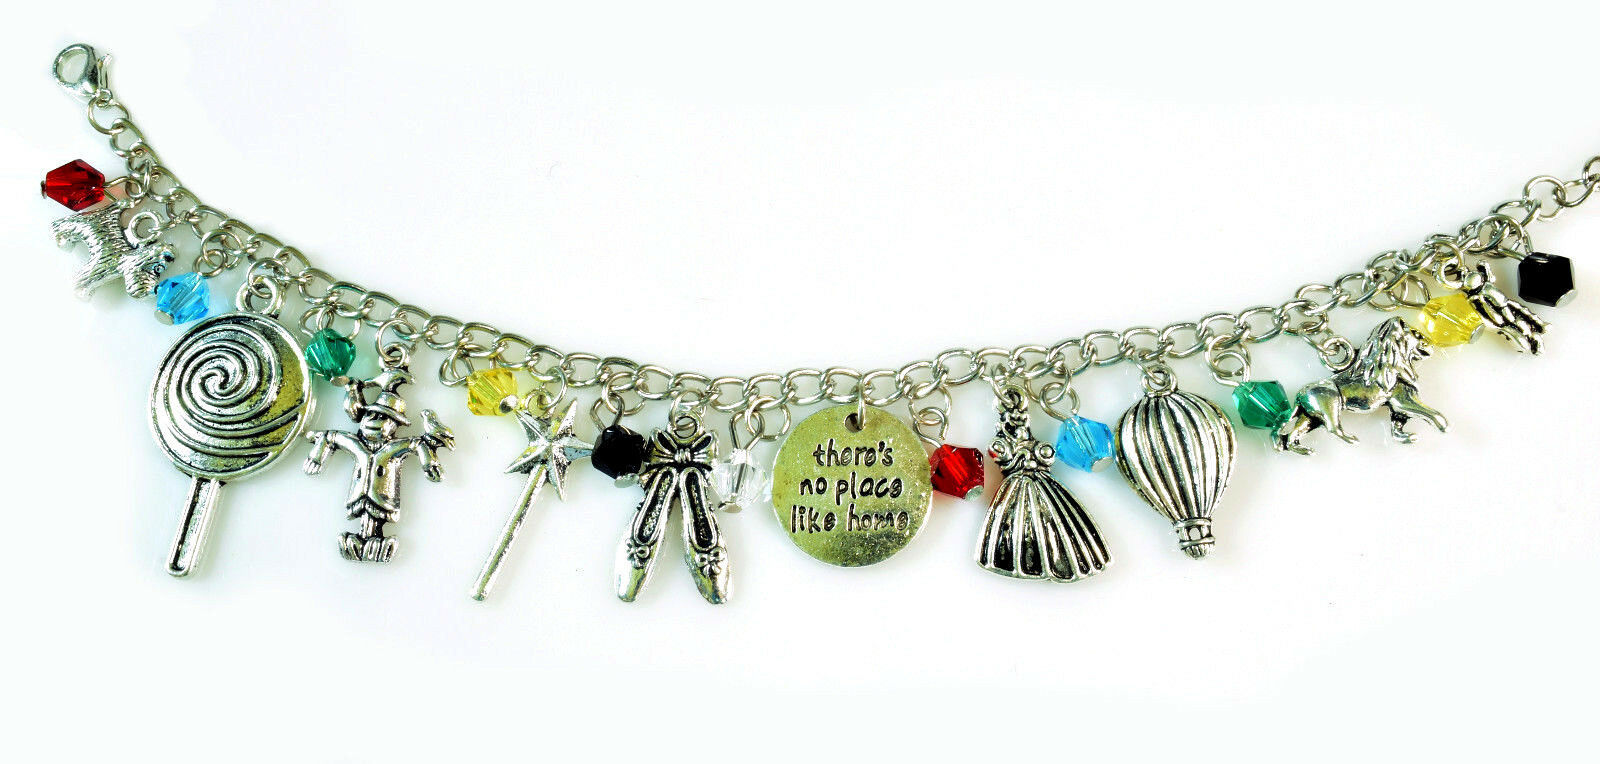 The WIZARD OF OZ Silver Beaded Charm Bracelet 7.5 inch NEW image 2